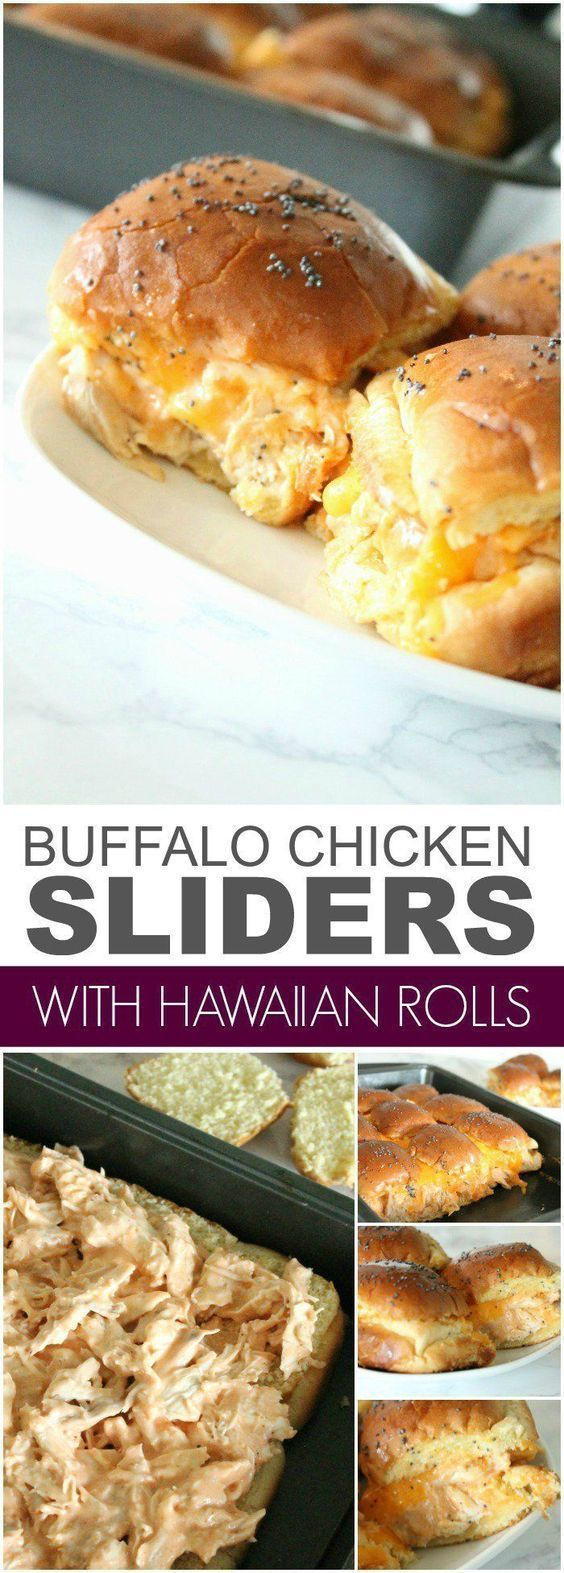 Buffalo Chicken Sliders Recipe #gamedayfood